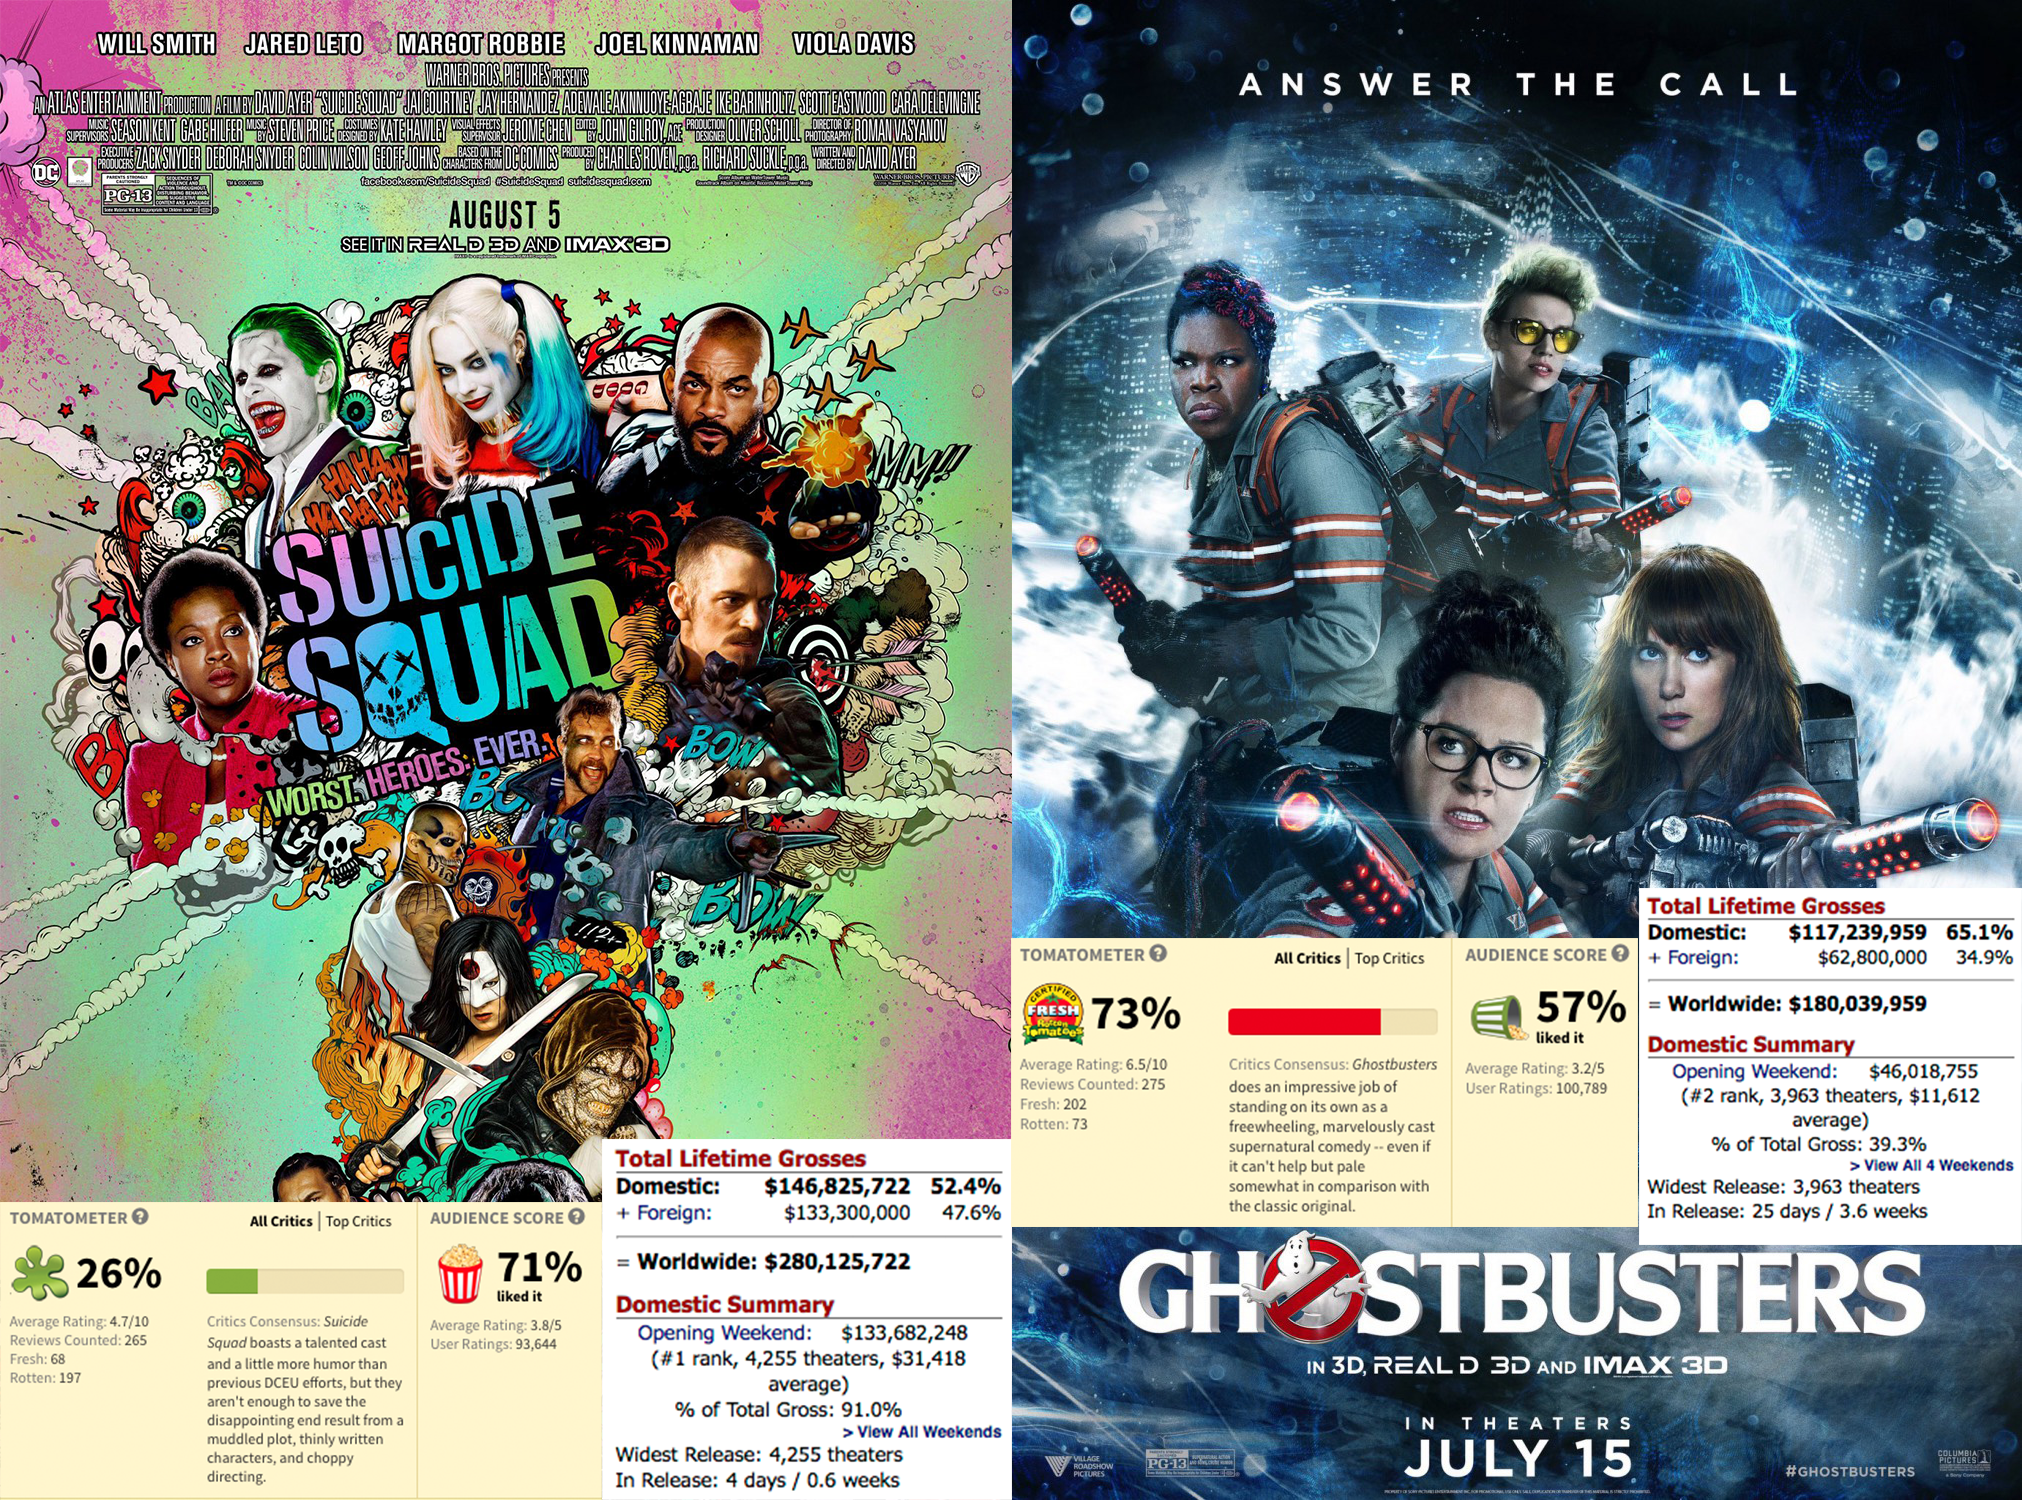 Two of the most maligned movies in the last month are Suicide Squad and Ghostbusters, and the audience has been just as divided about these movies as the critics......but in the opposite direction.